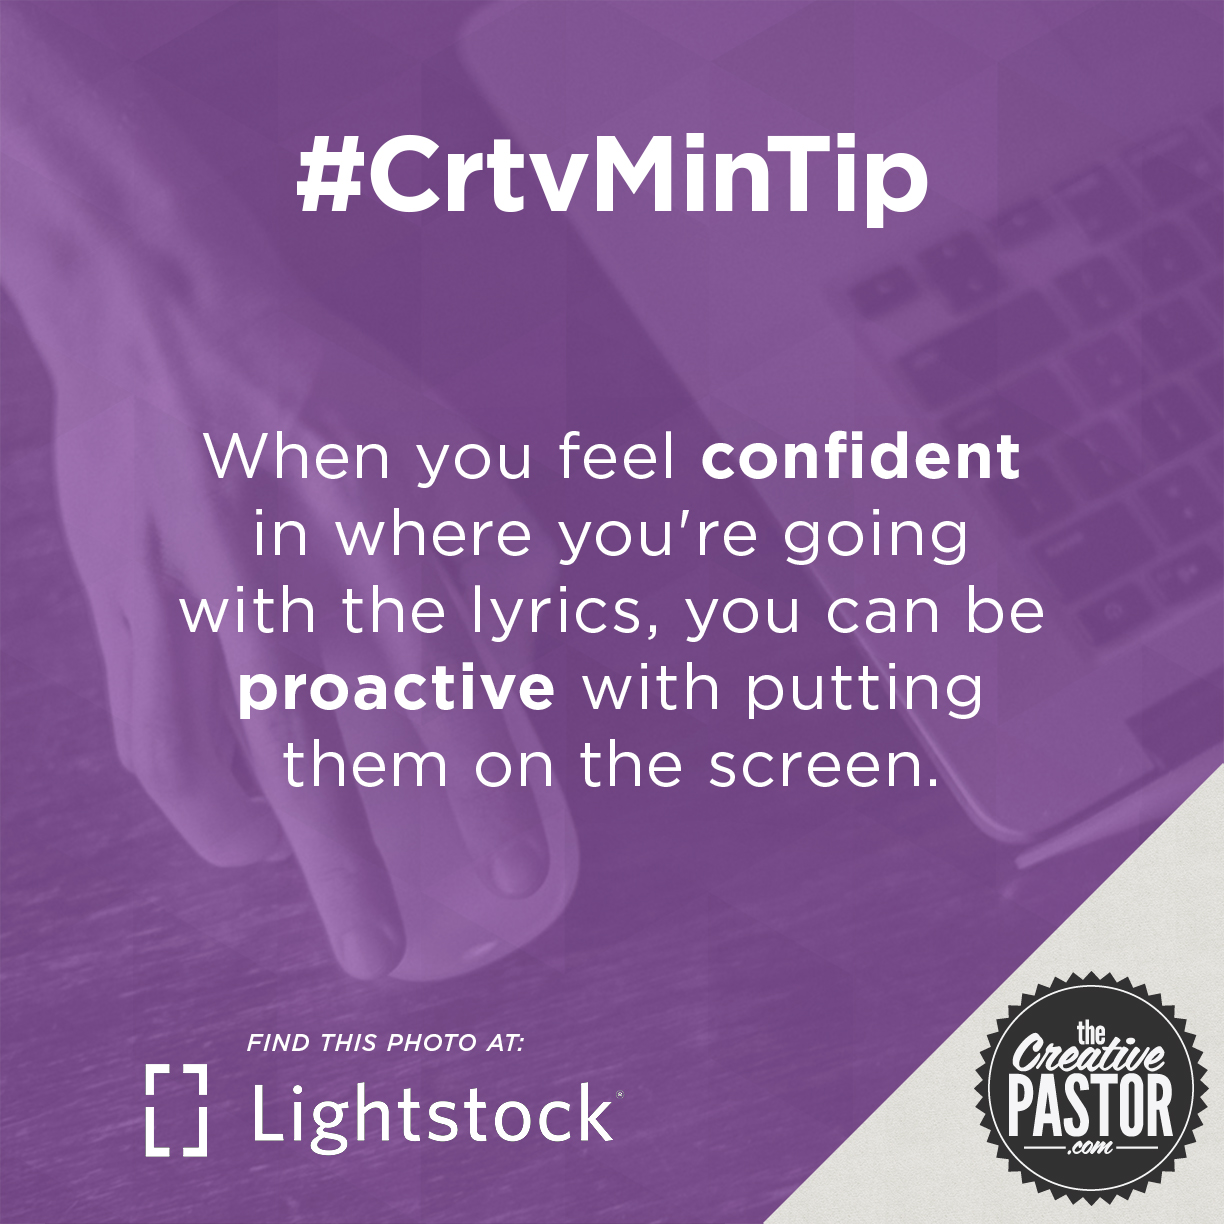 When you feel confident in where you're going with the lyrics, you can be proactive with putting them on the screen.